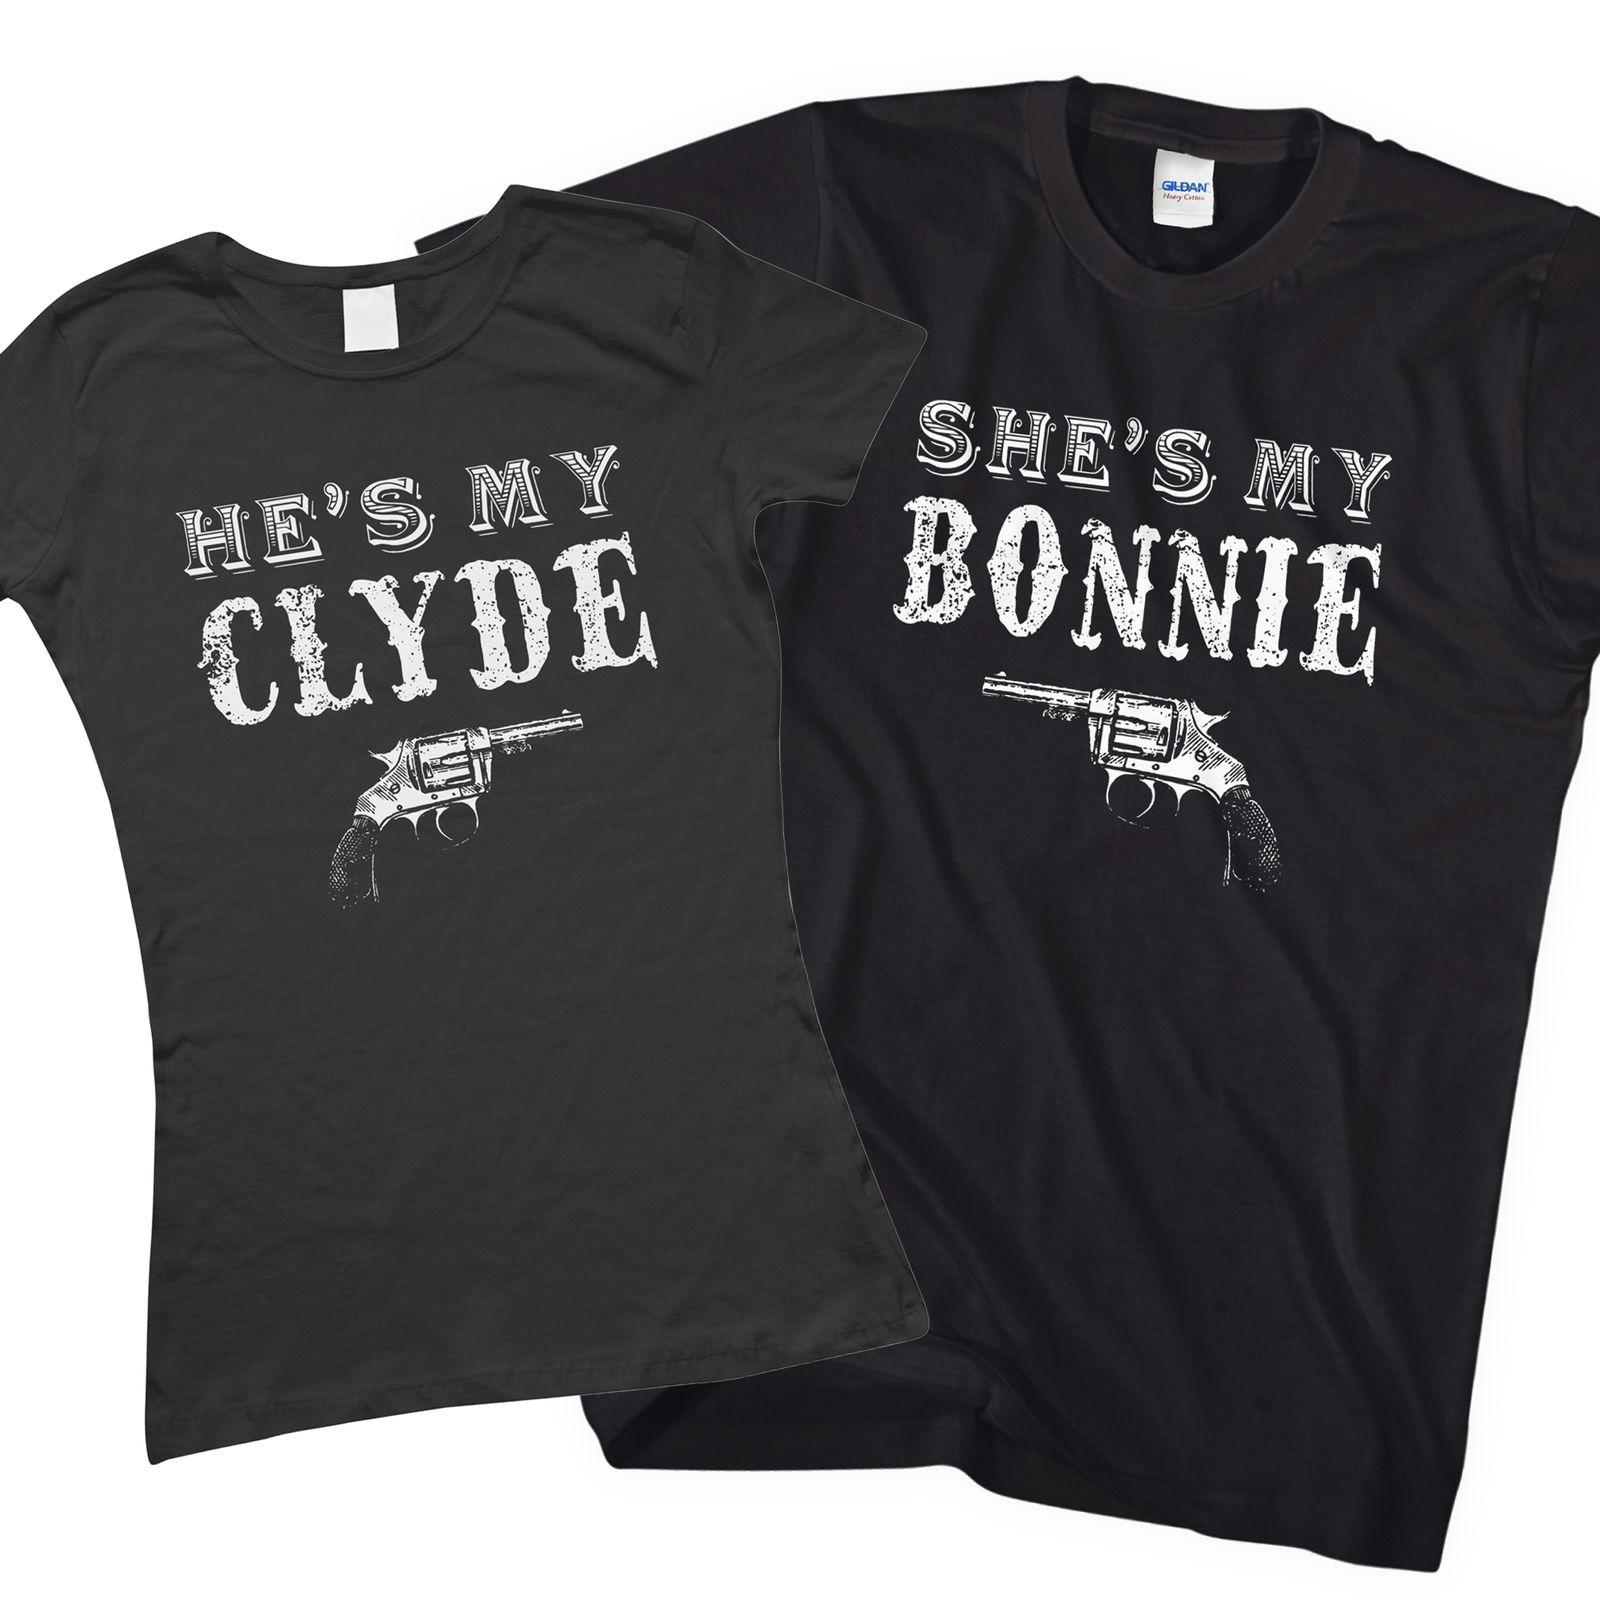 Bonnie And Clyde Matching Couples T Shirt Valentines Day Gift For